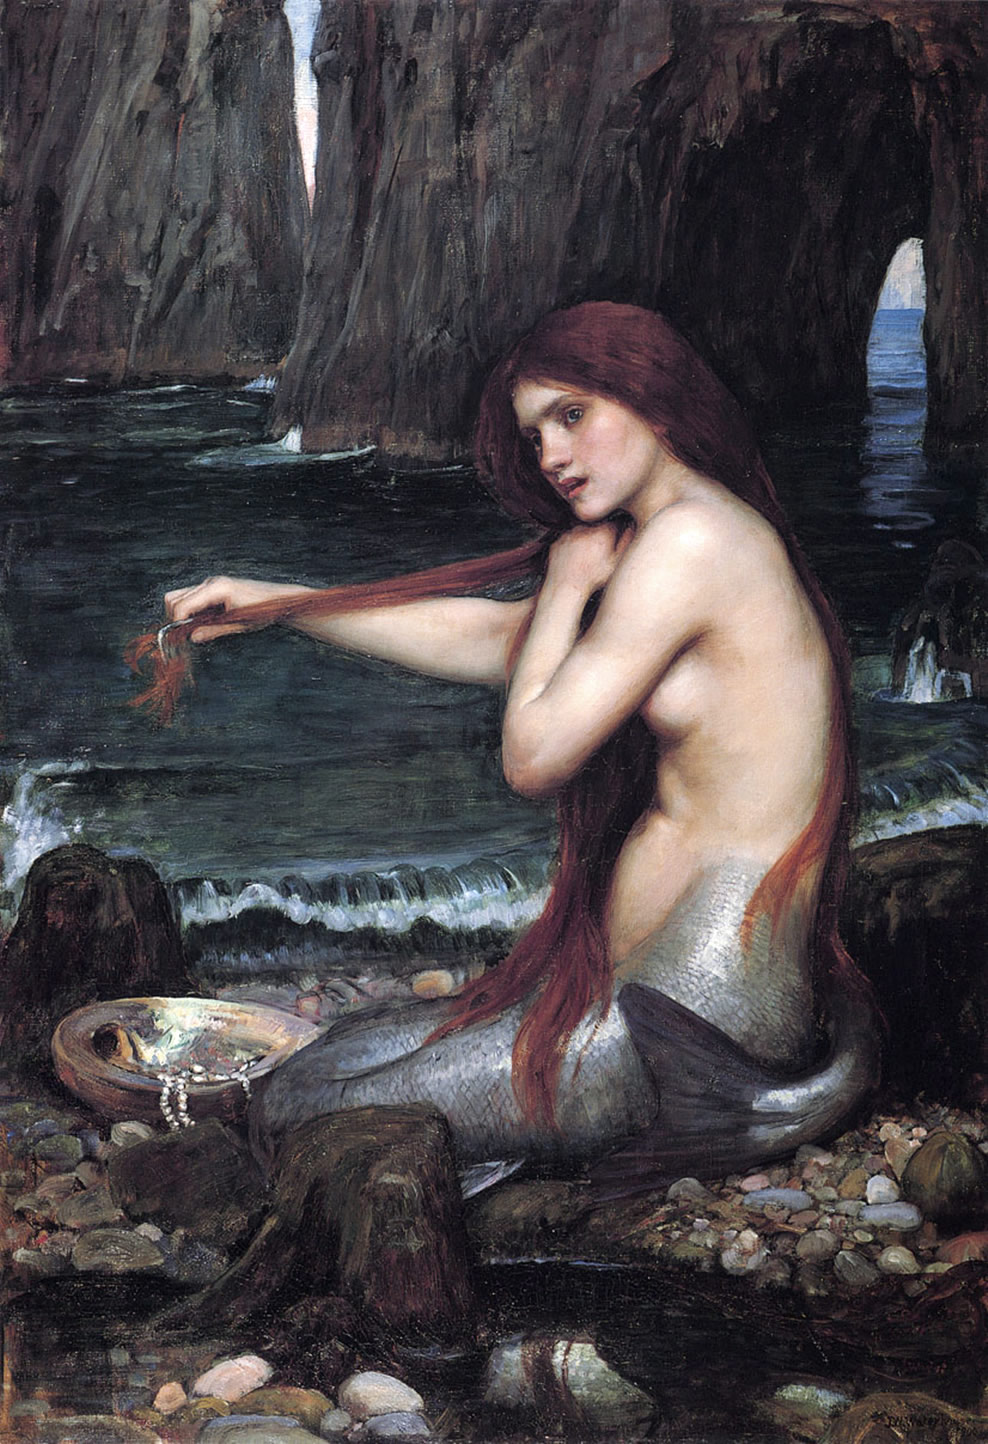 Mermaid - Wikipedia, the free encyclopedia